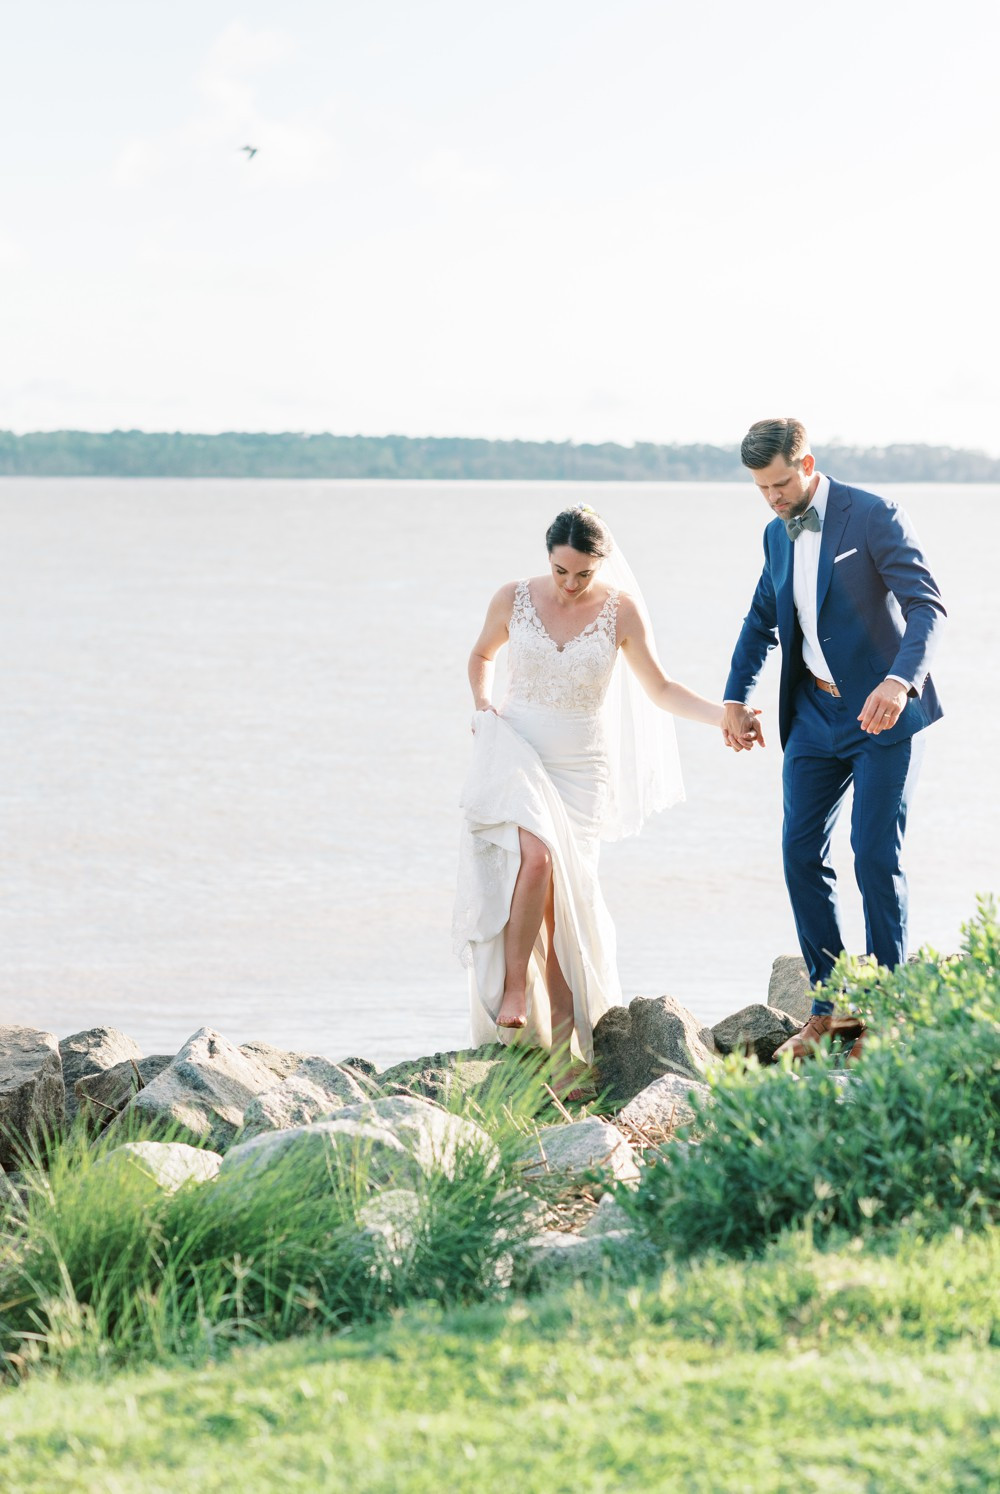 A Destination Wedding at St. Simons Island bride and groom holding hands on the beach rock